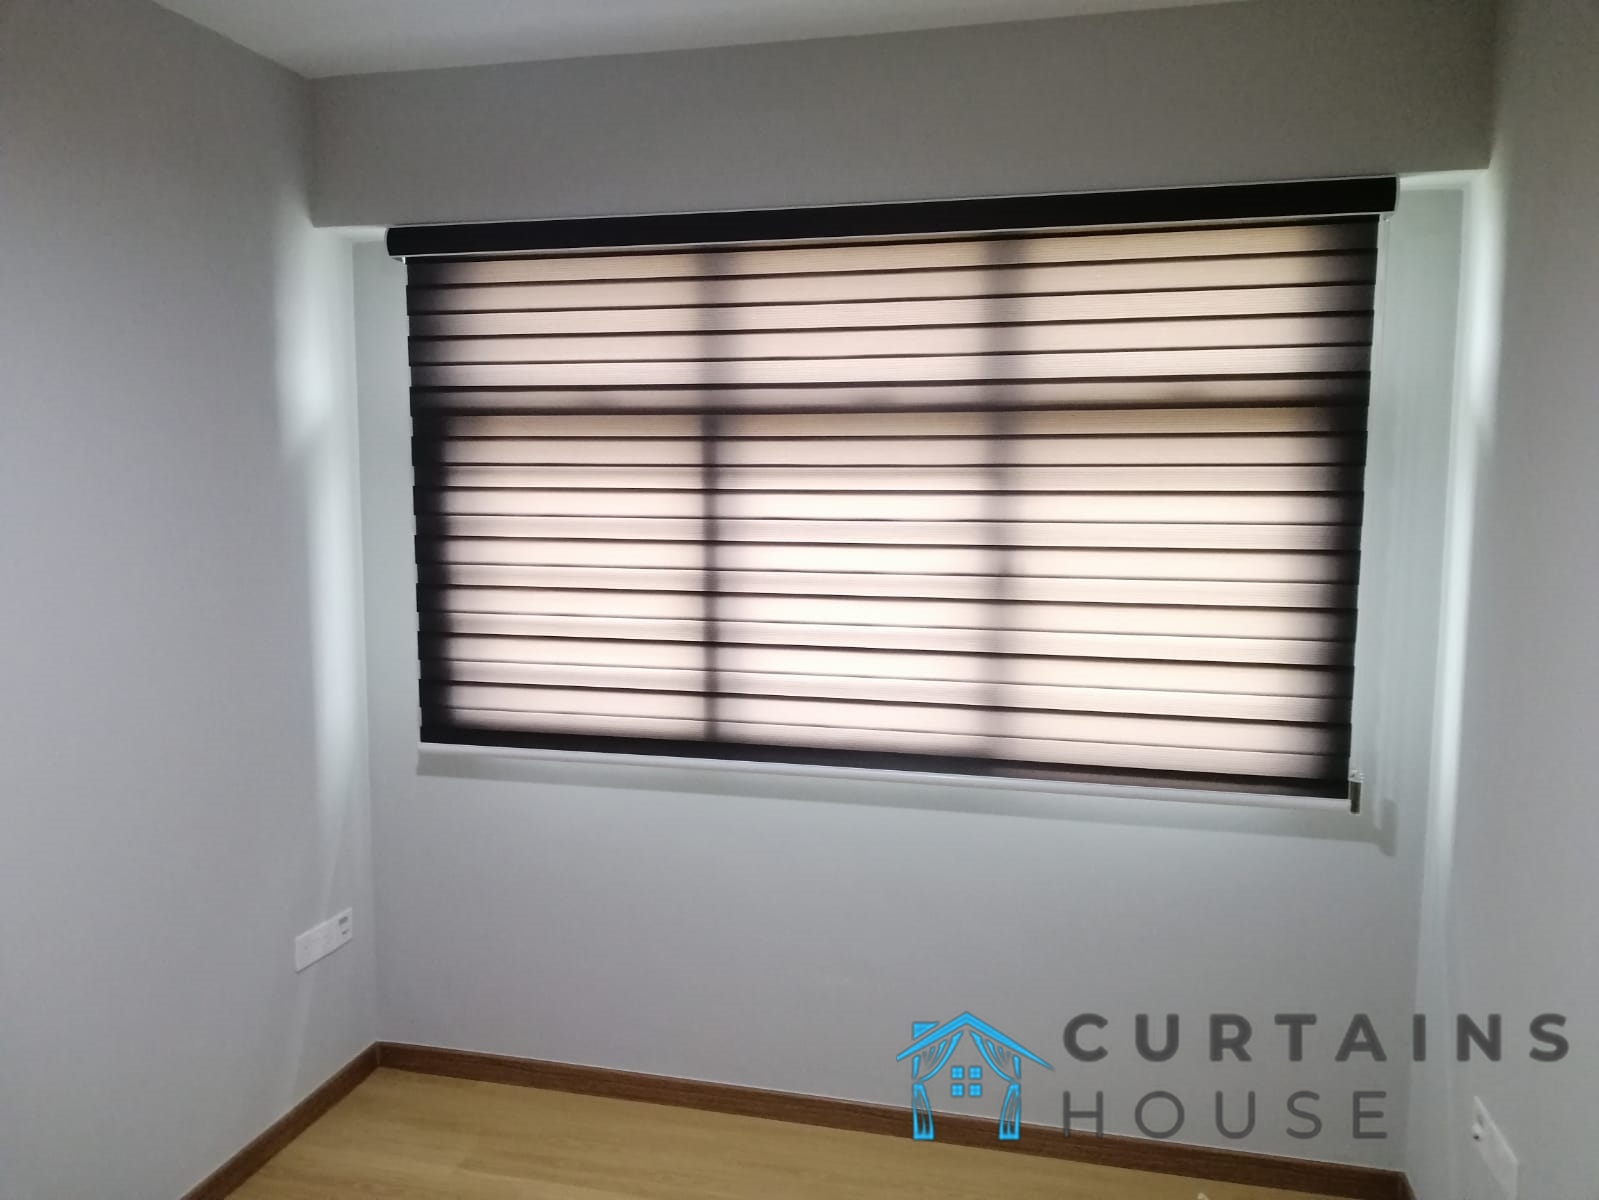 Korean Blinds Bedroom Blinds Installation Curtains House Singapore HDB – Serangoon